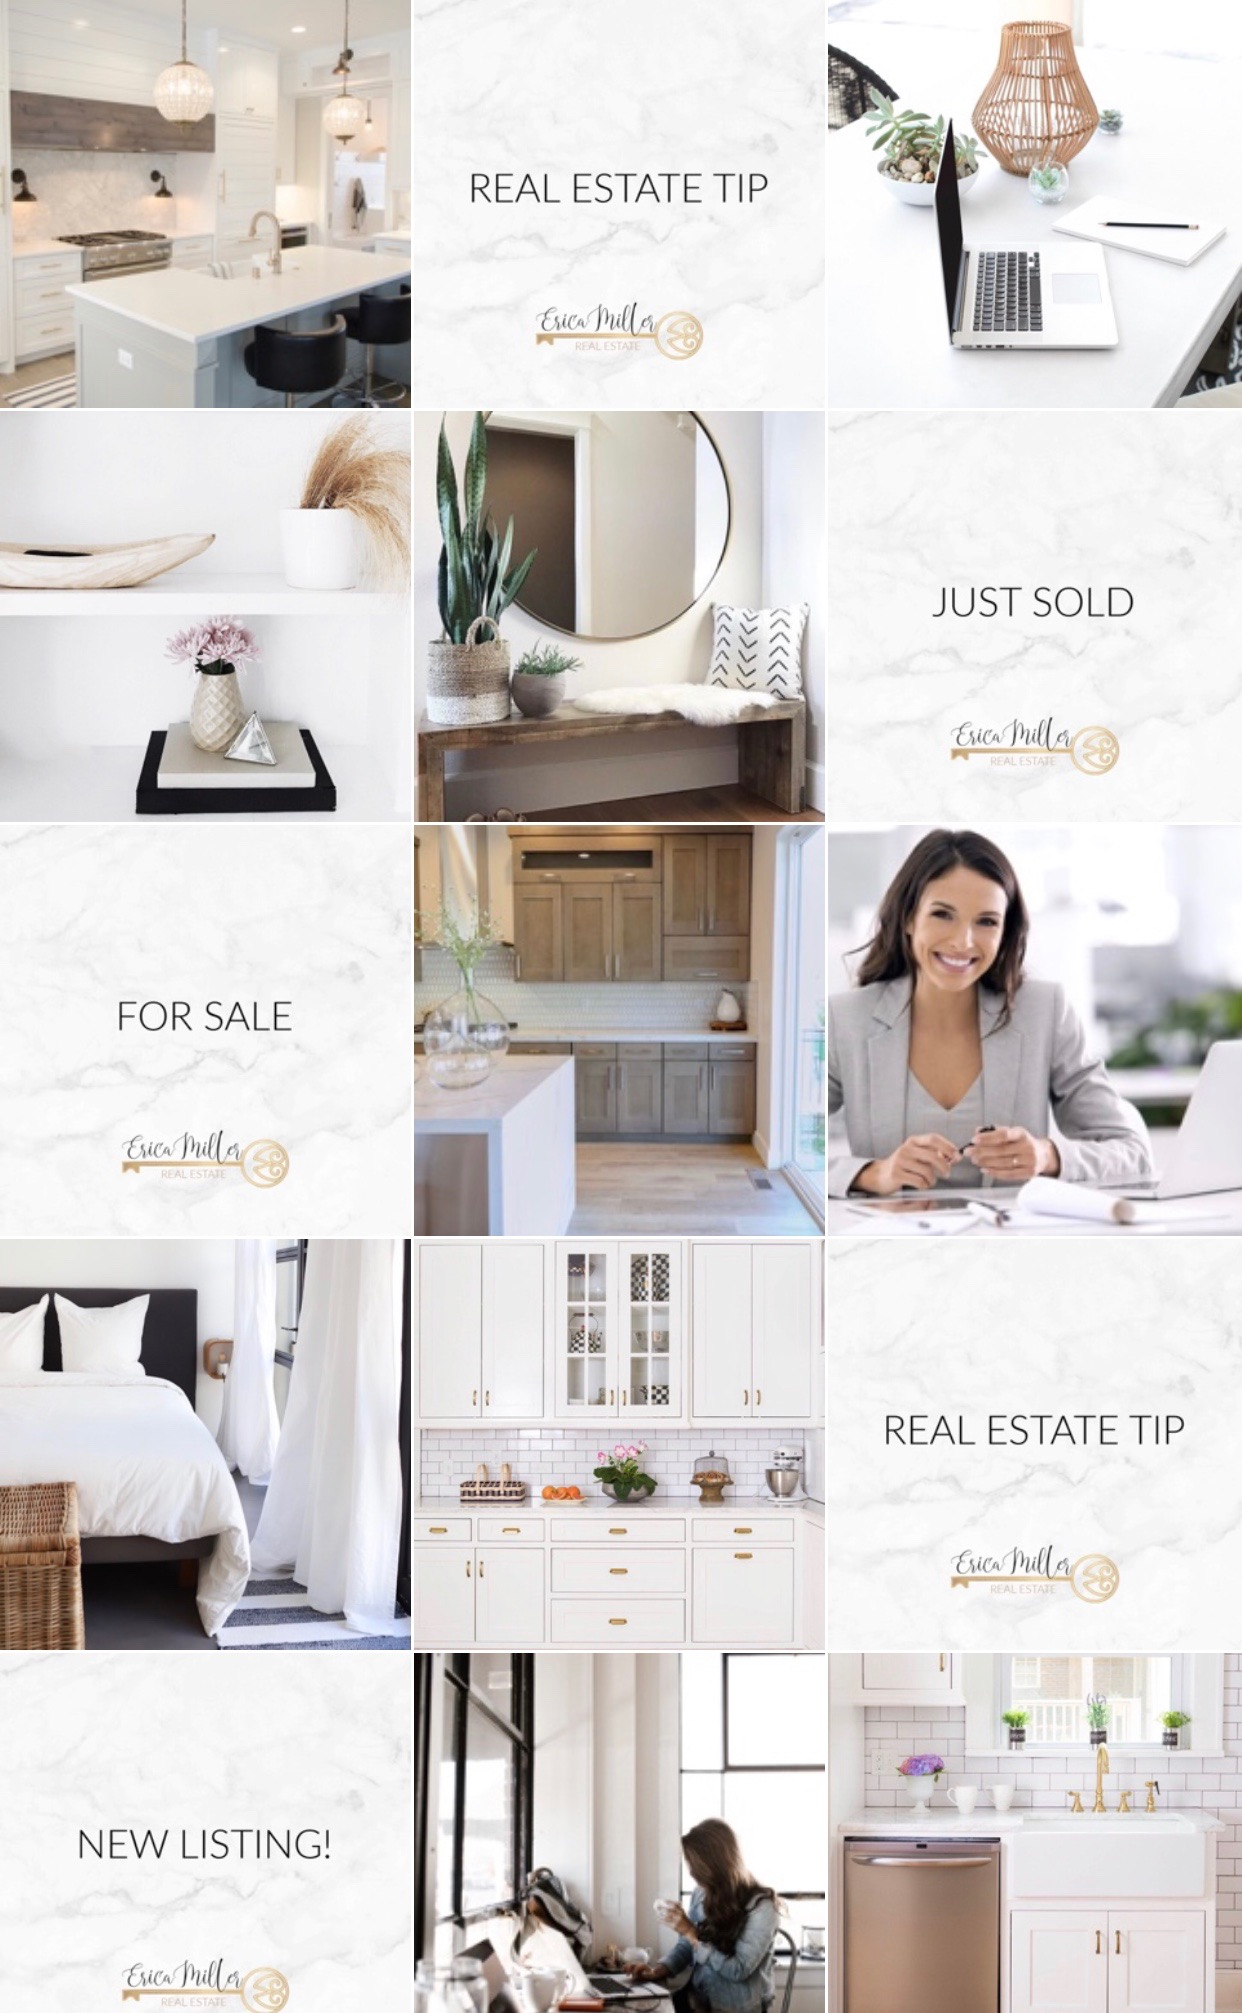 Real Estate Instagram, Neutral Theme